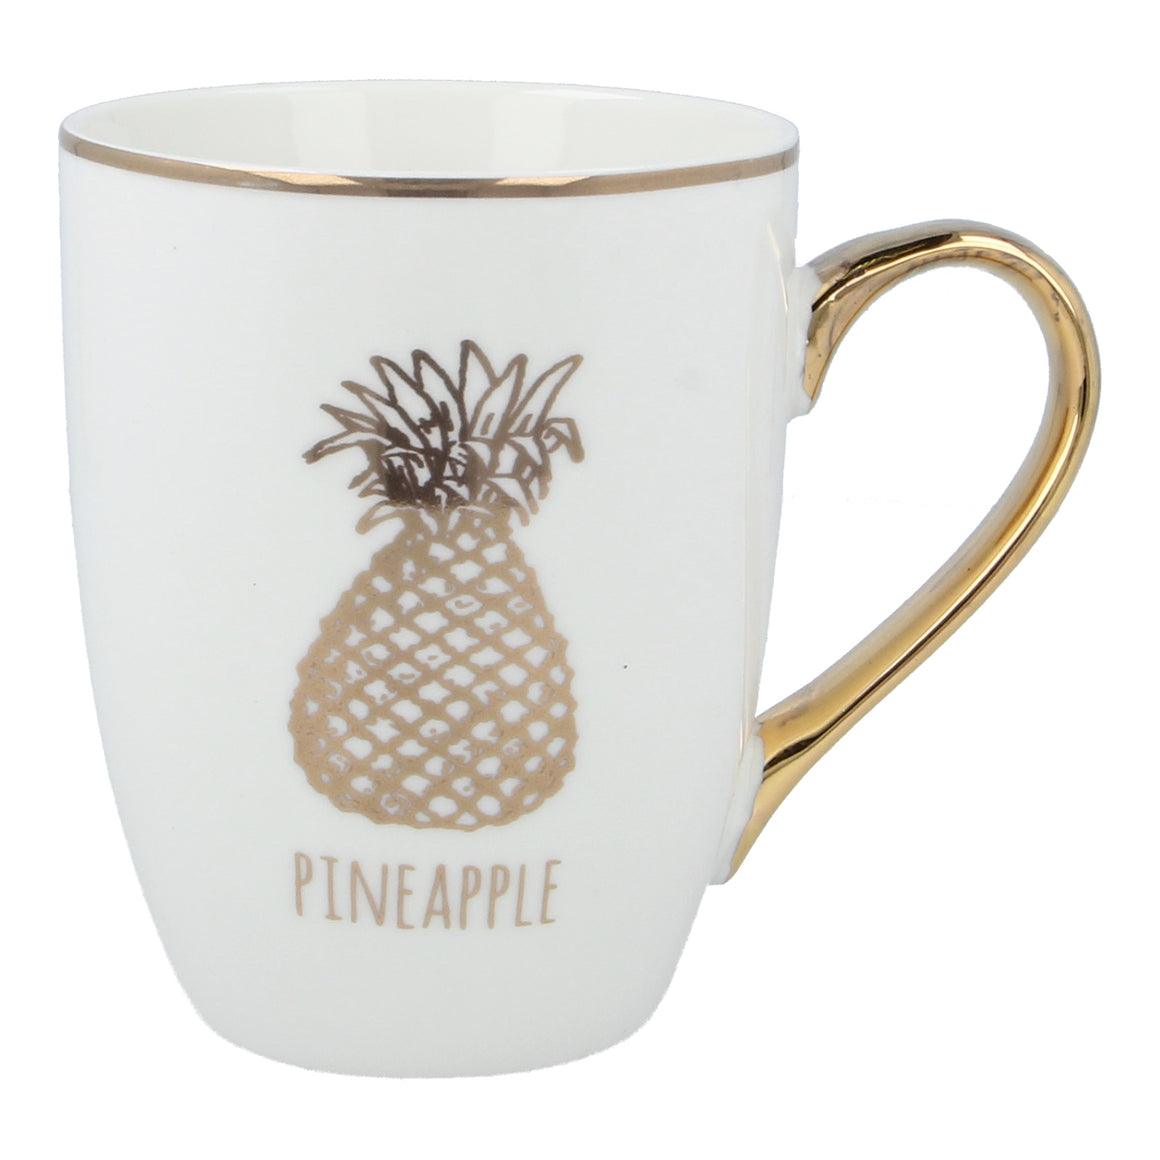 pineapple mug in gold